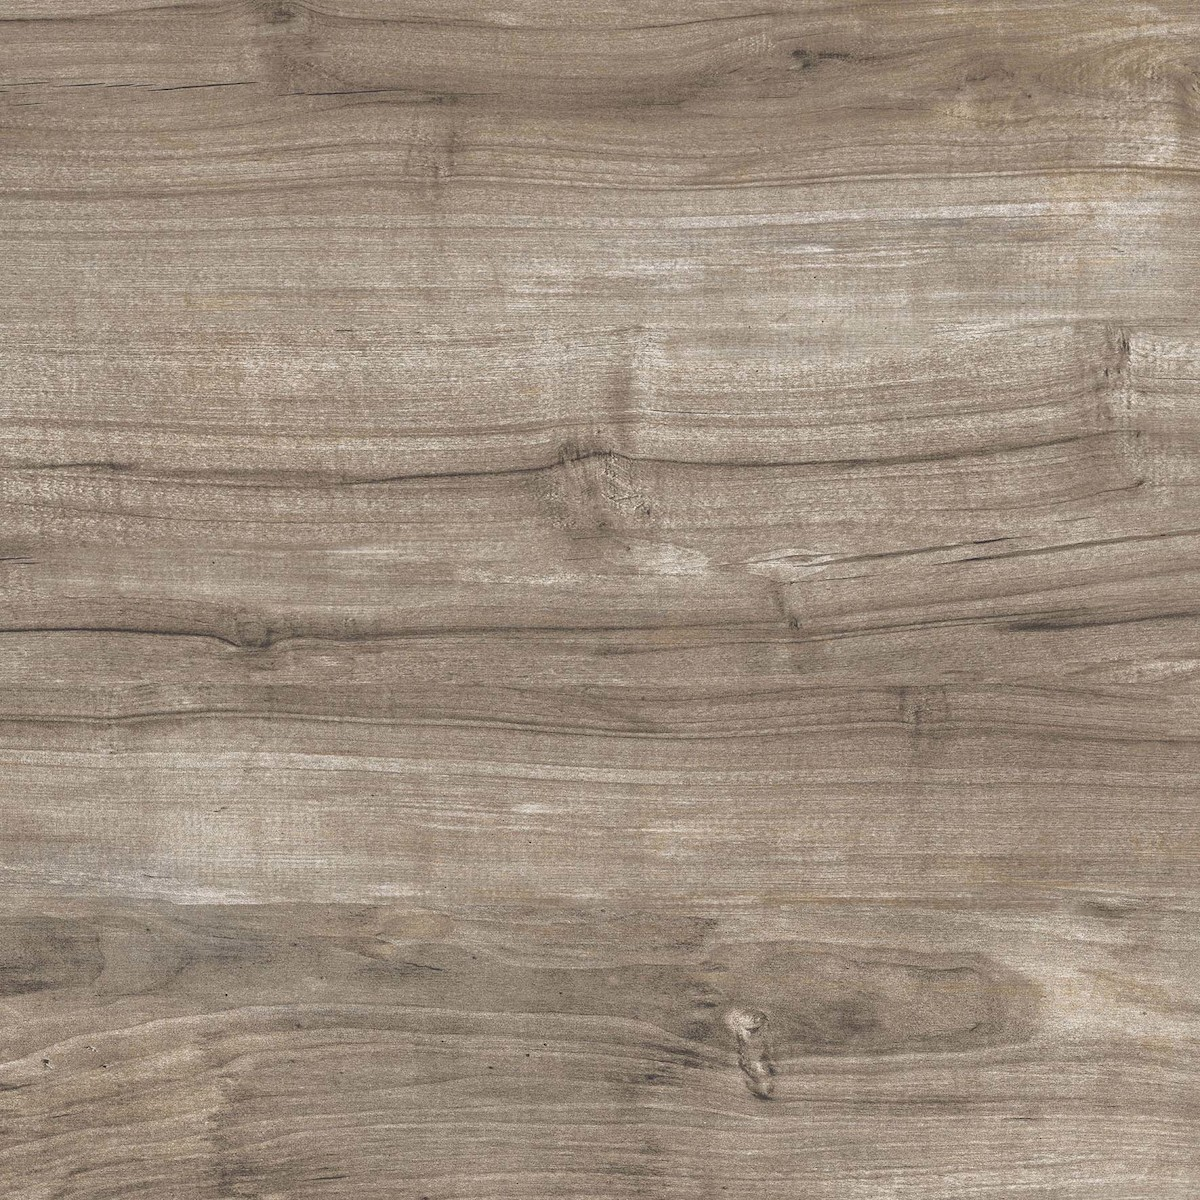 Dlažba Sintesi Timber S noce 60x60x2 cm mat 20TIMBER11751R